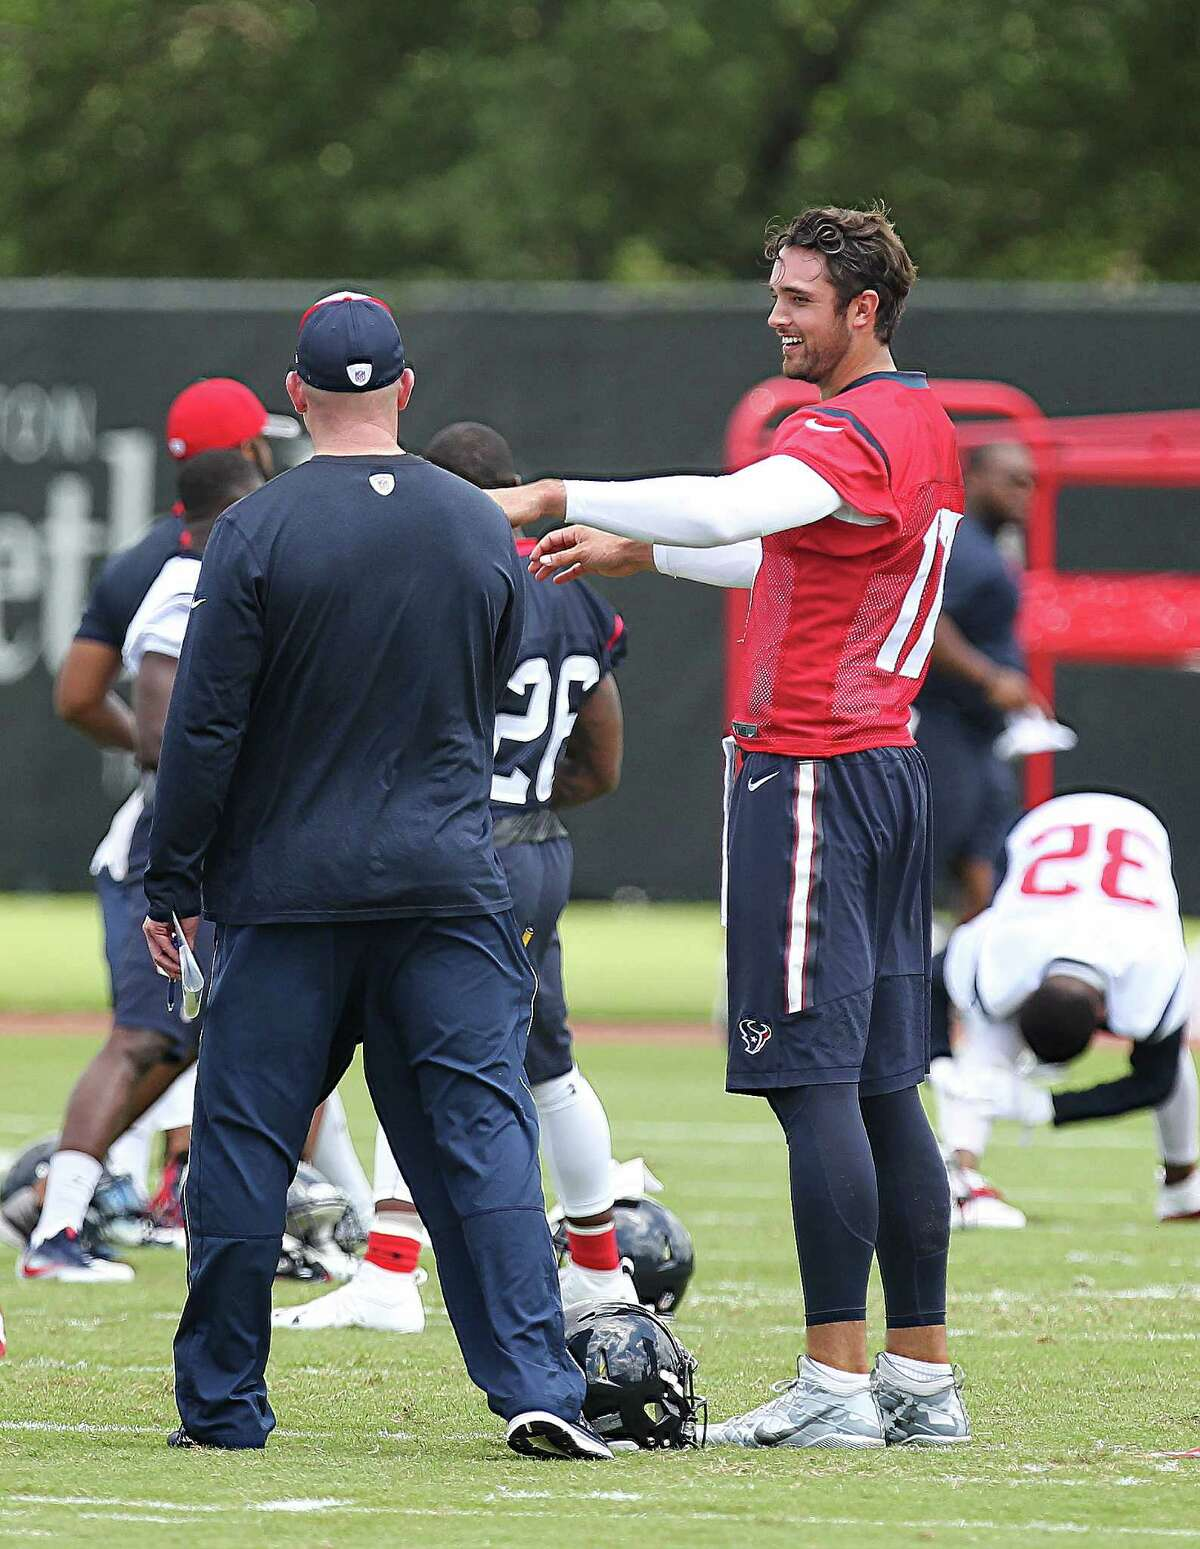 Texans Quarterback Brock Osweiler participates in the first day of OTAs Monday, May 23, 2016, in Houston.